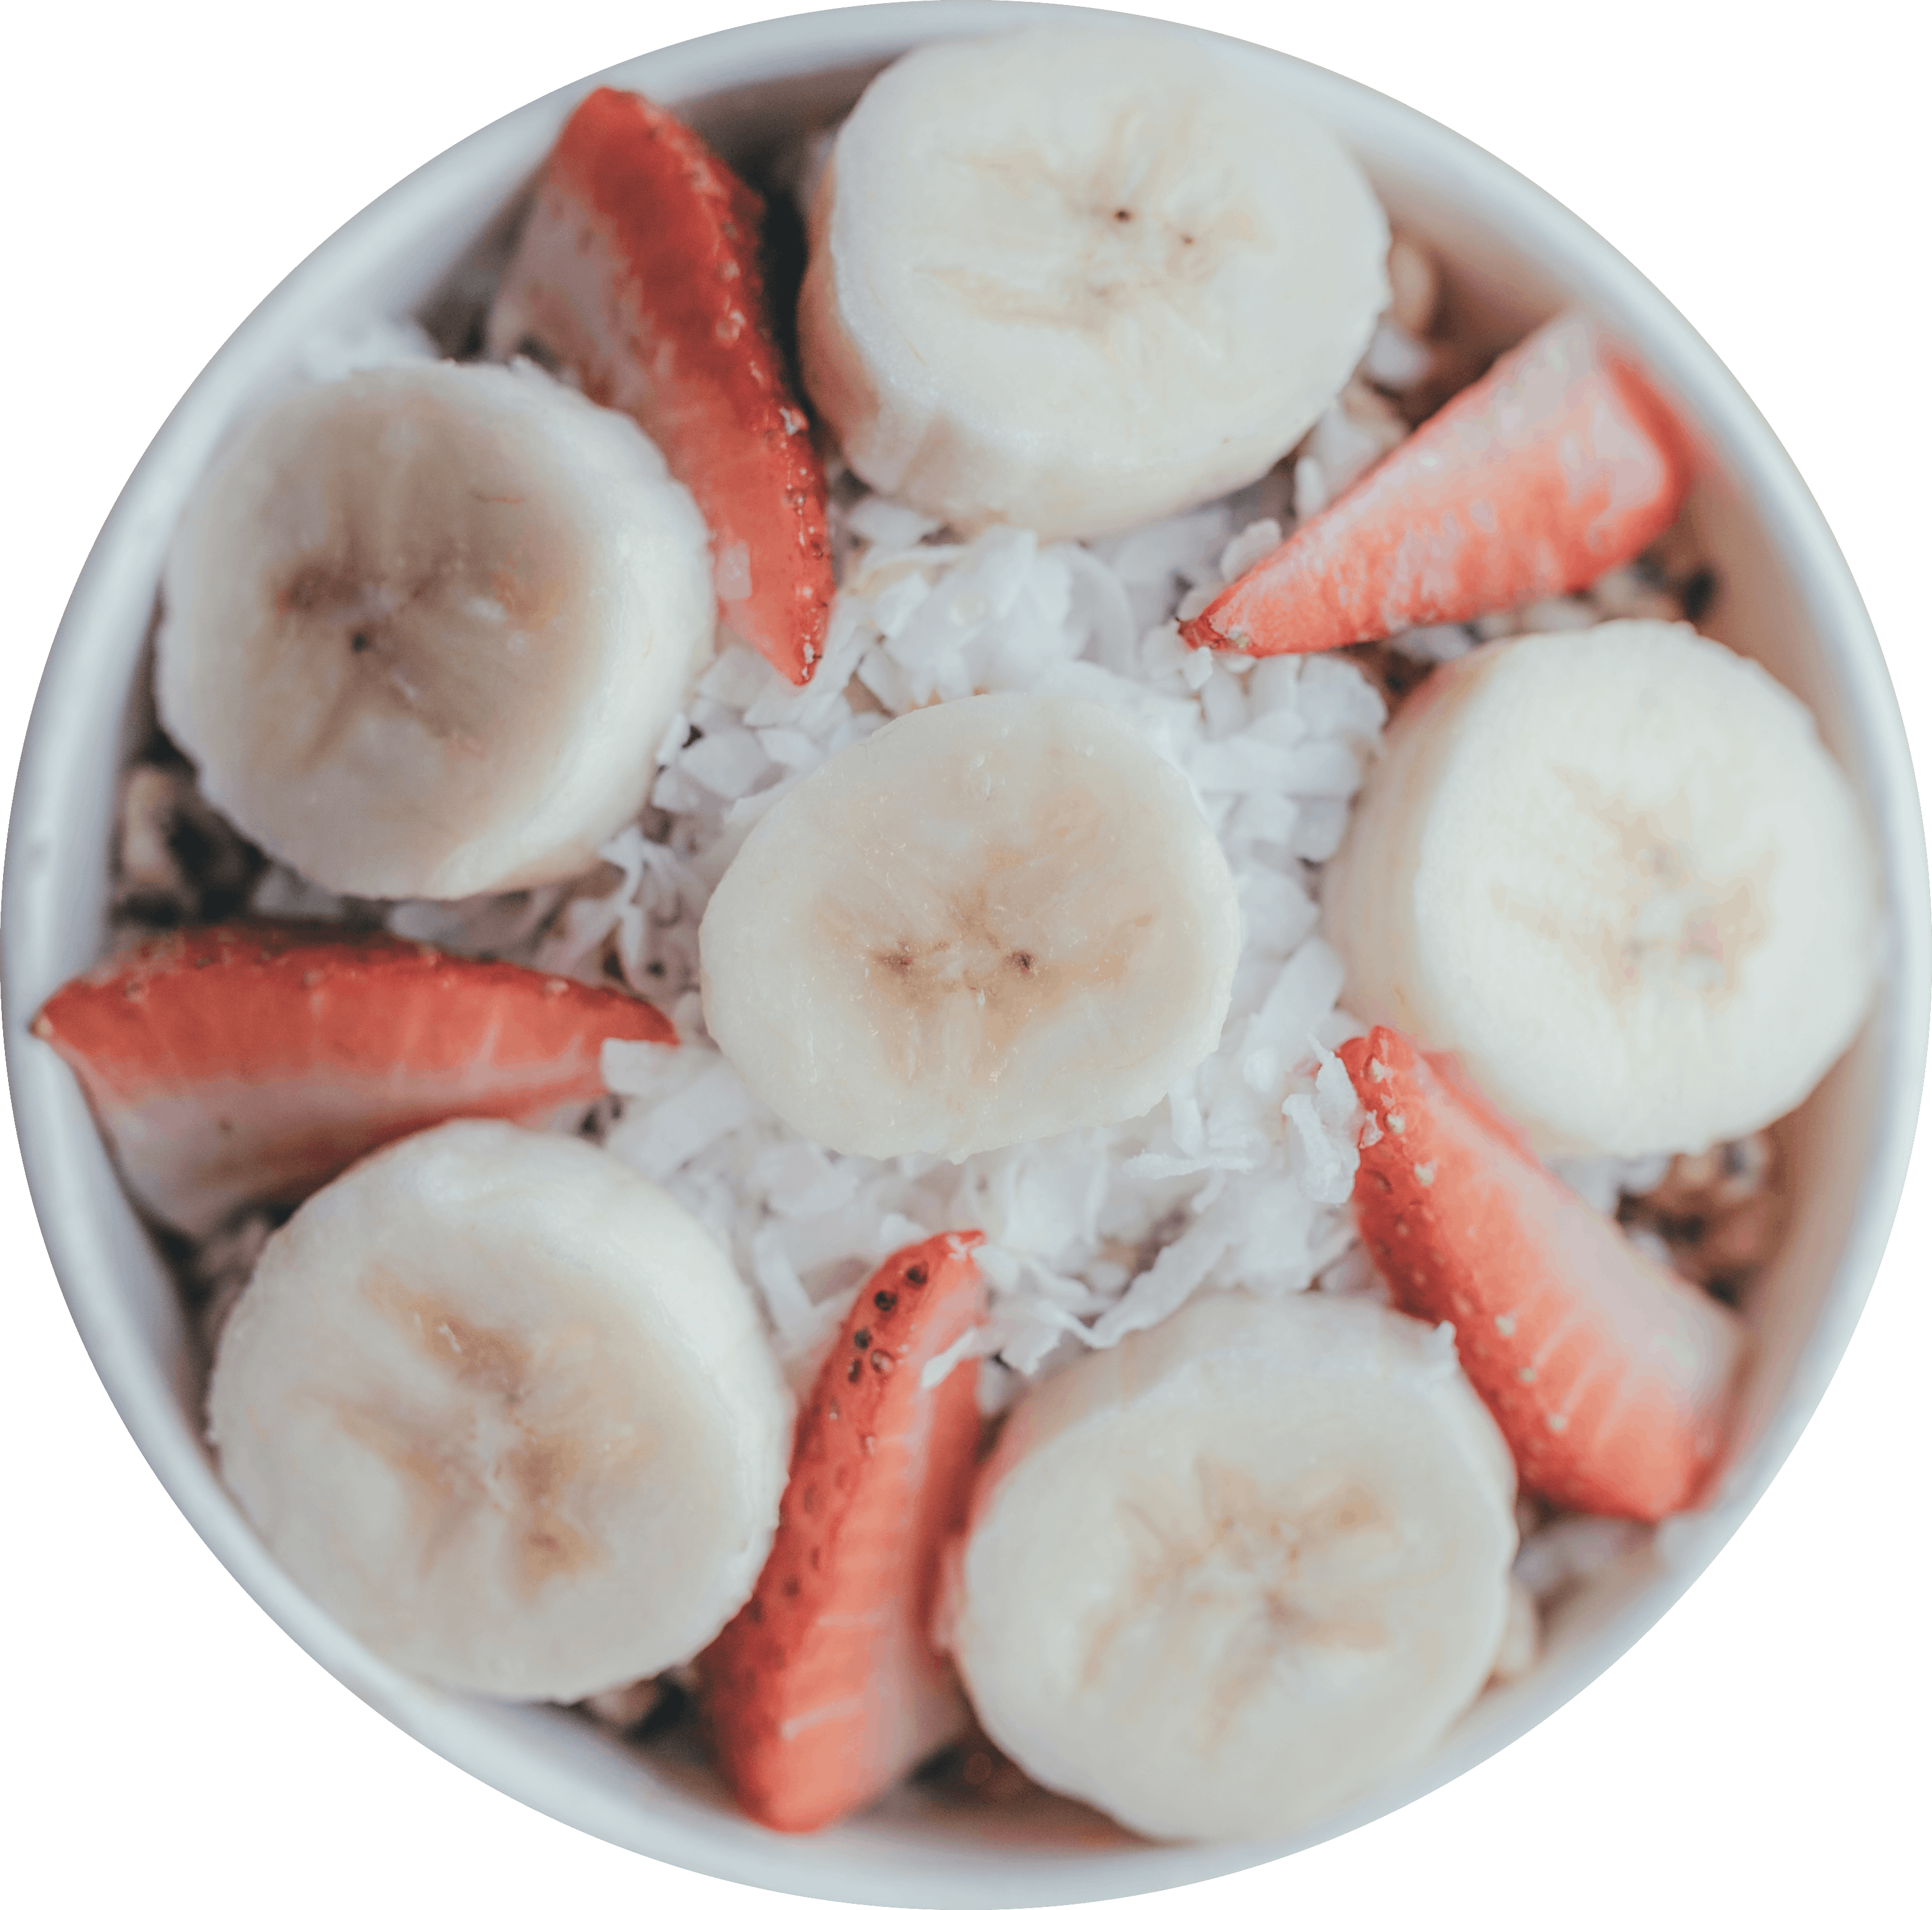 Sea Sider Acai Bowl from Blended (formerly known as Bowl of Heaven) in Madison, WI